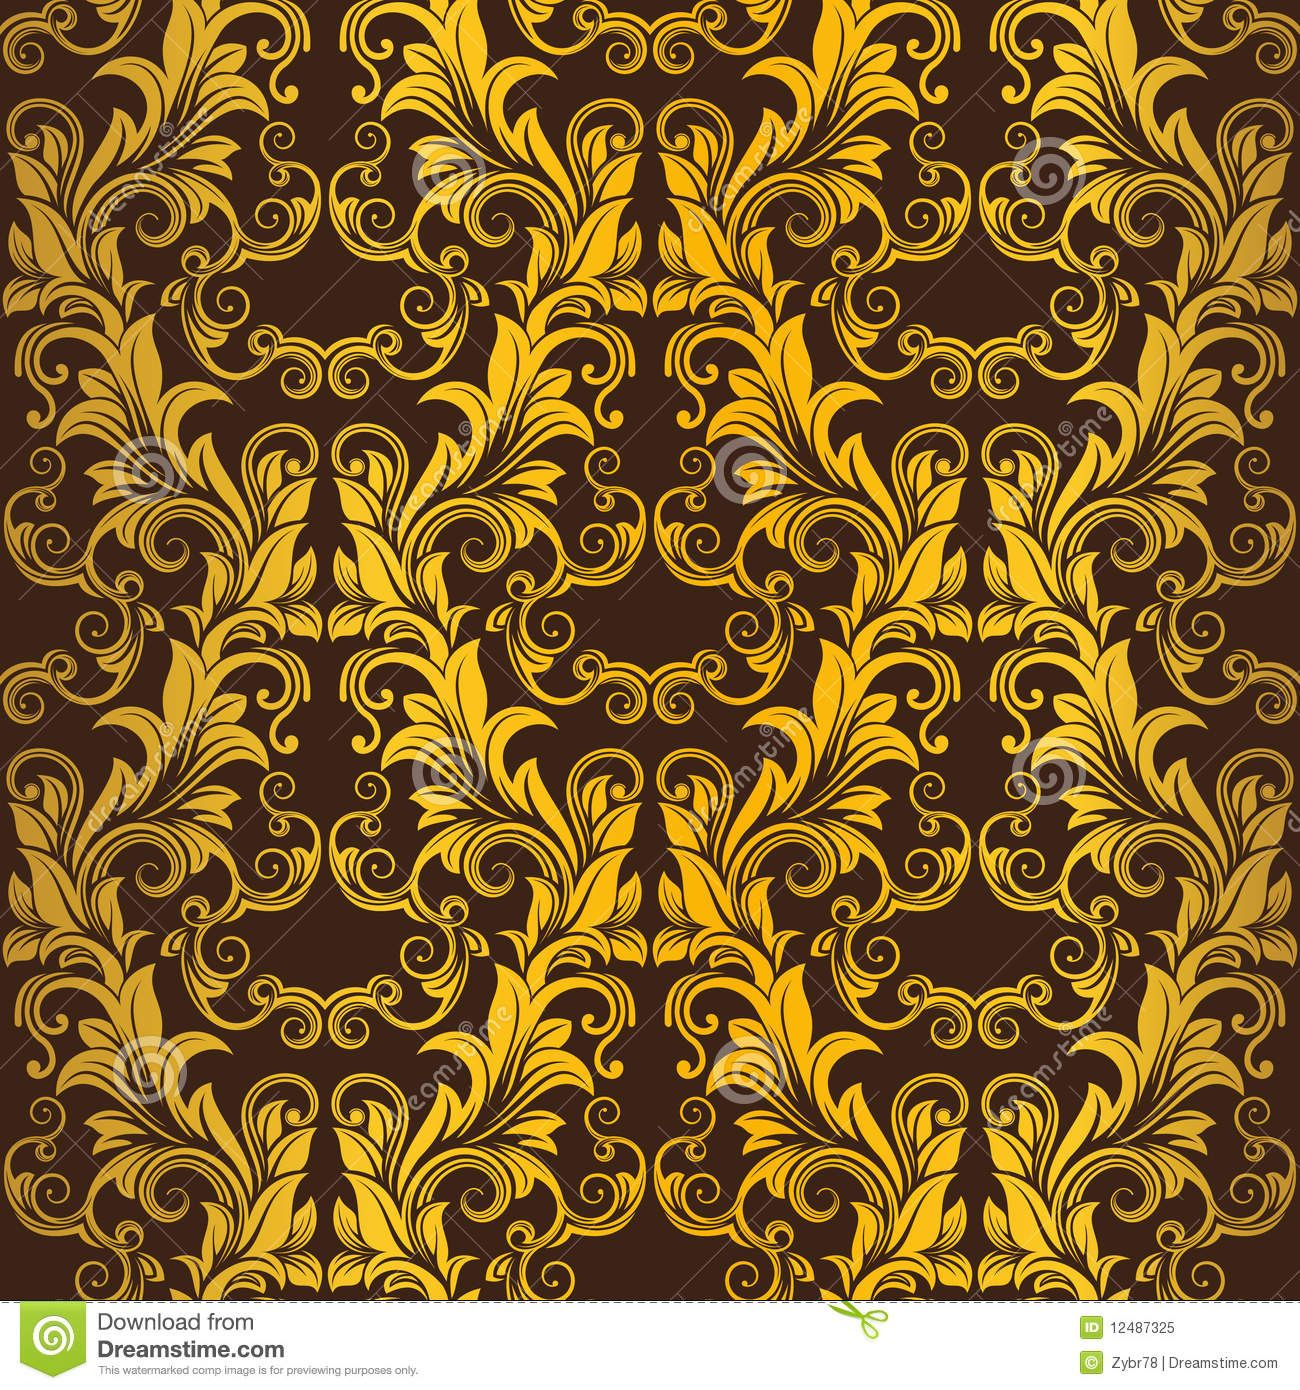 the yellow wallpaper mental illness